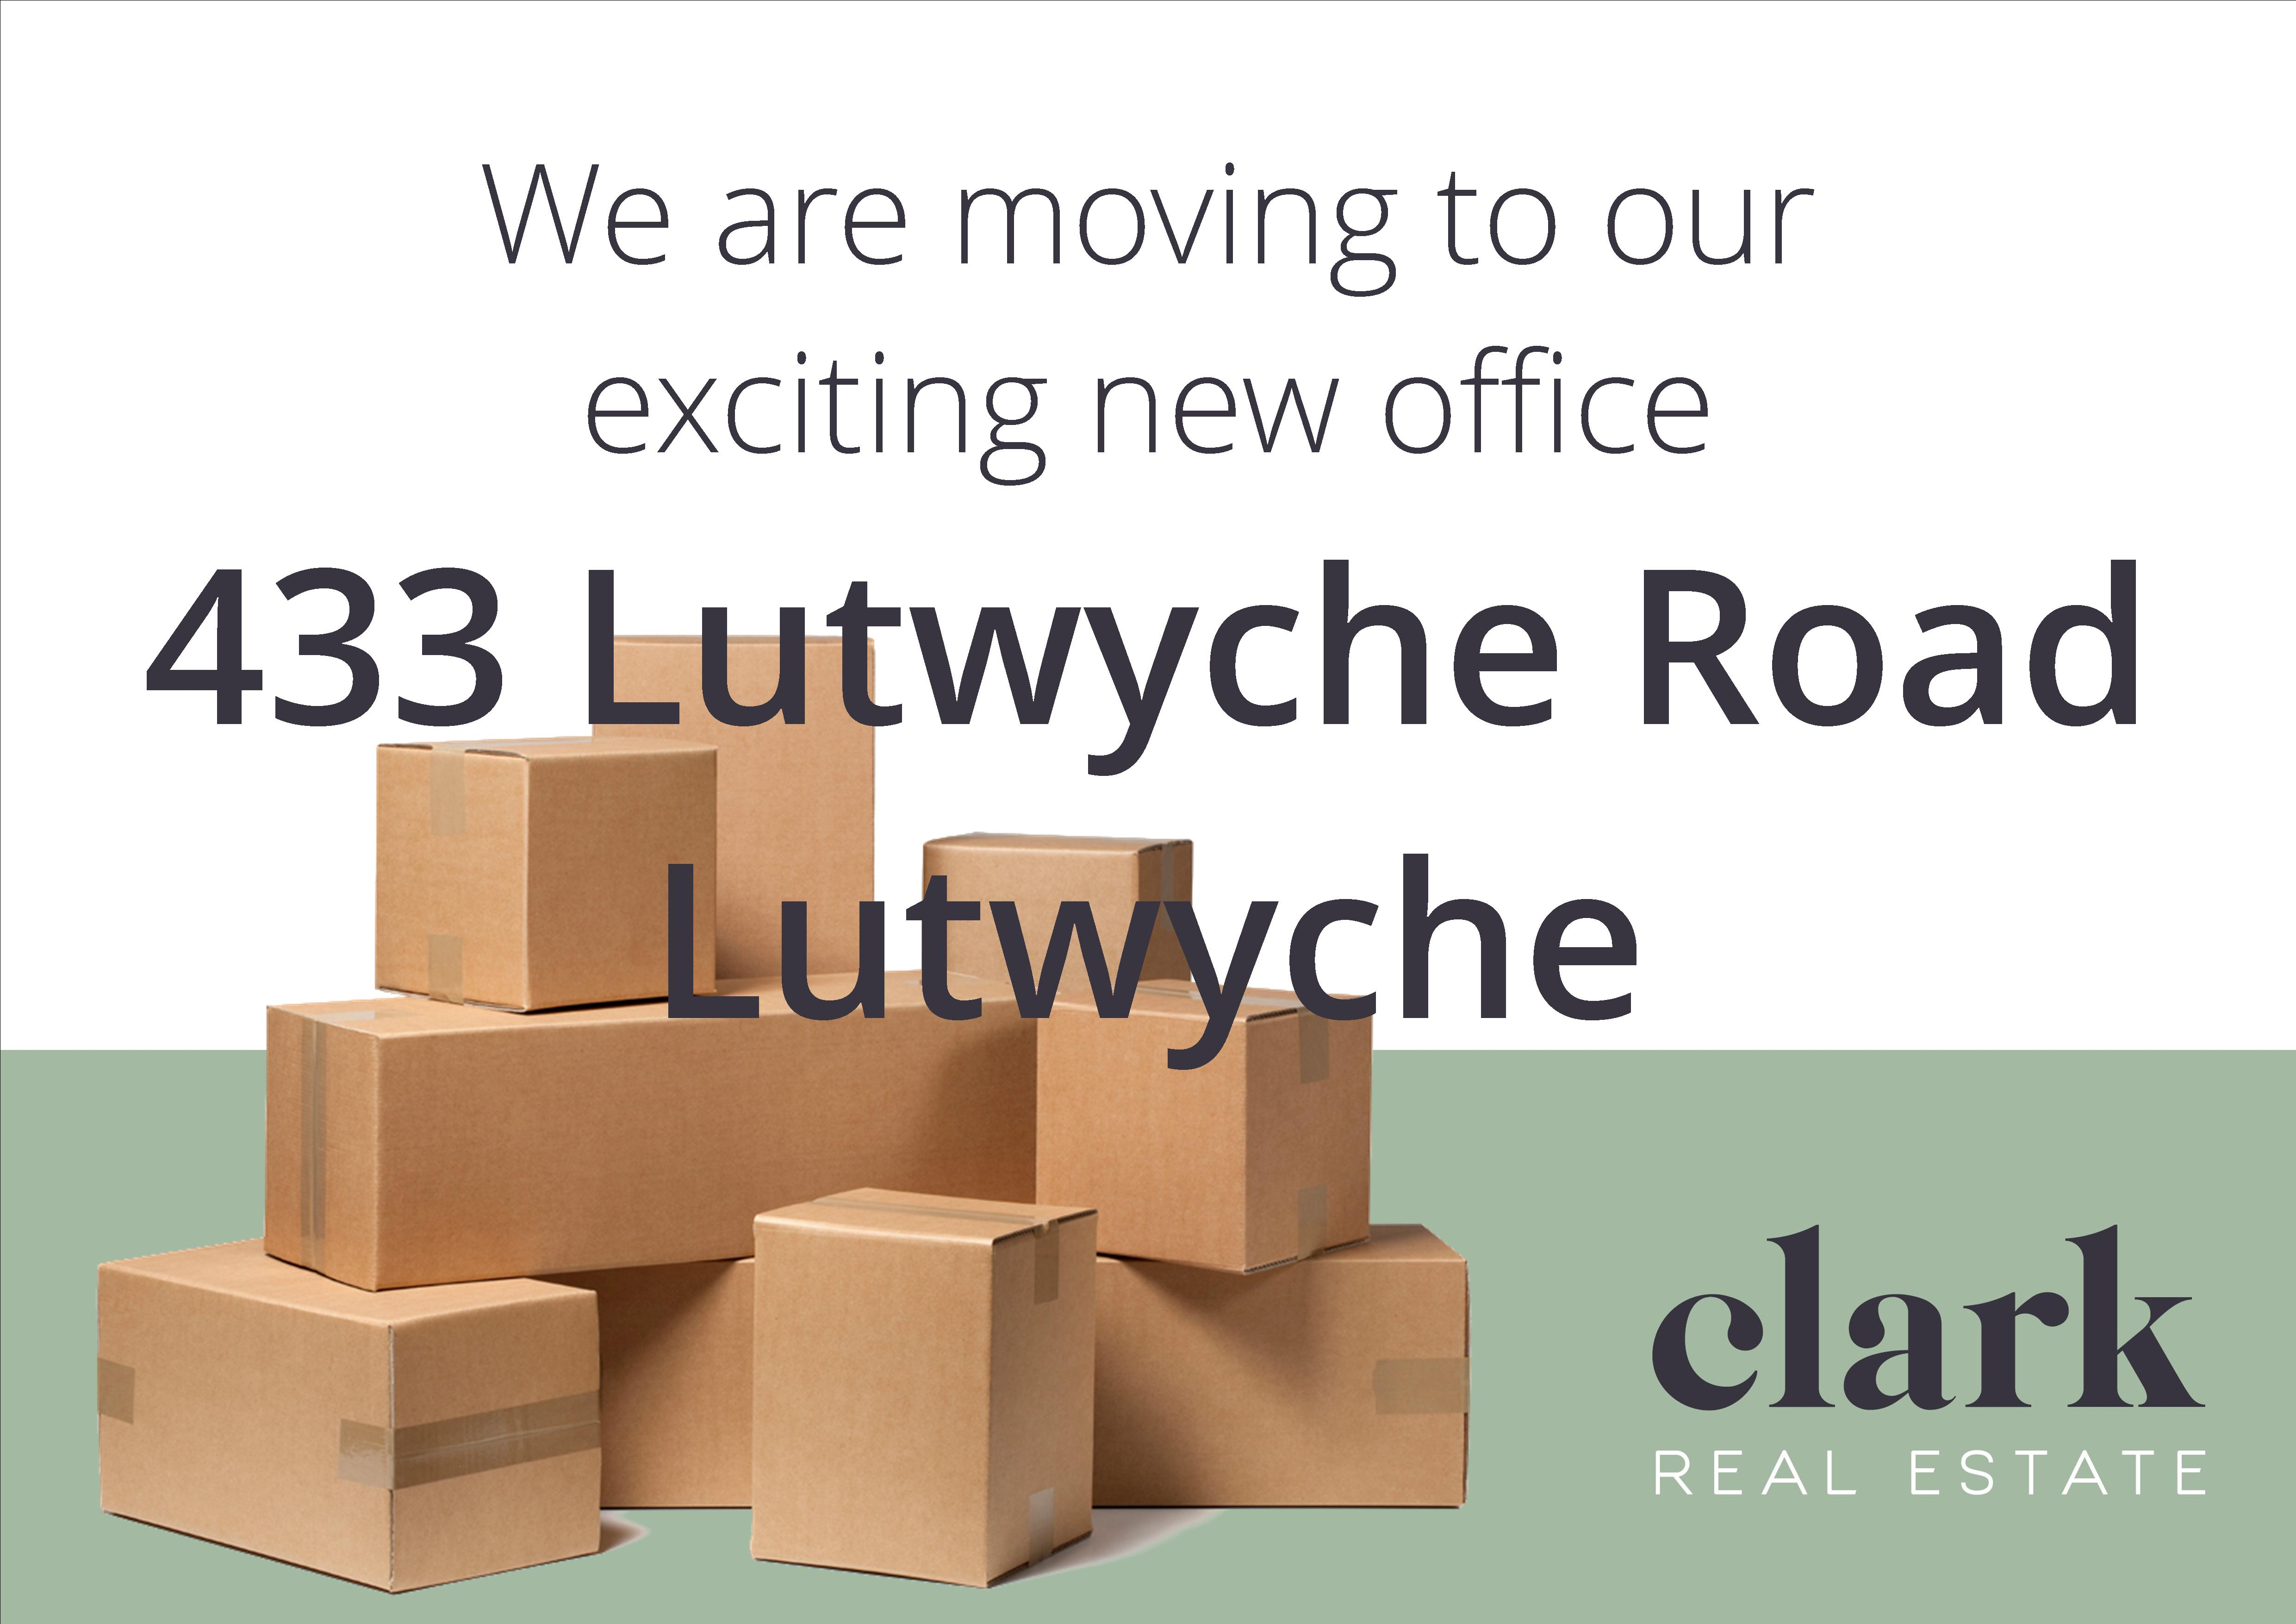 We Will Be In The New Office This Week!